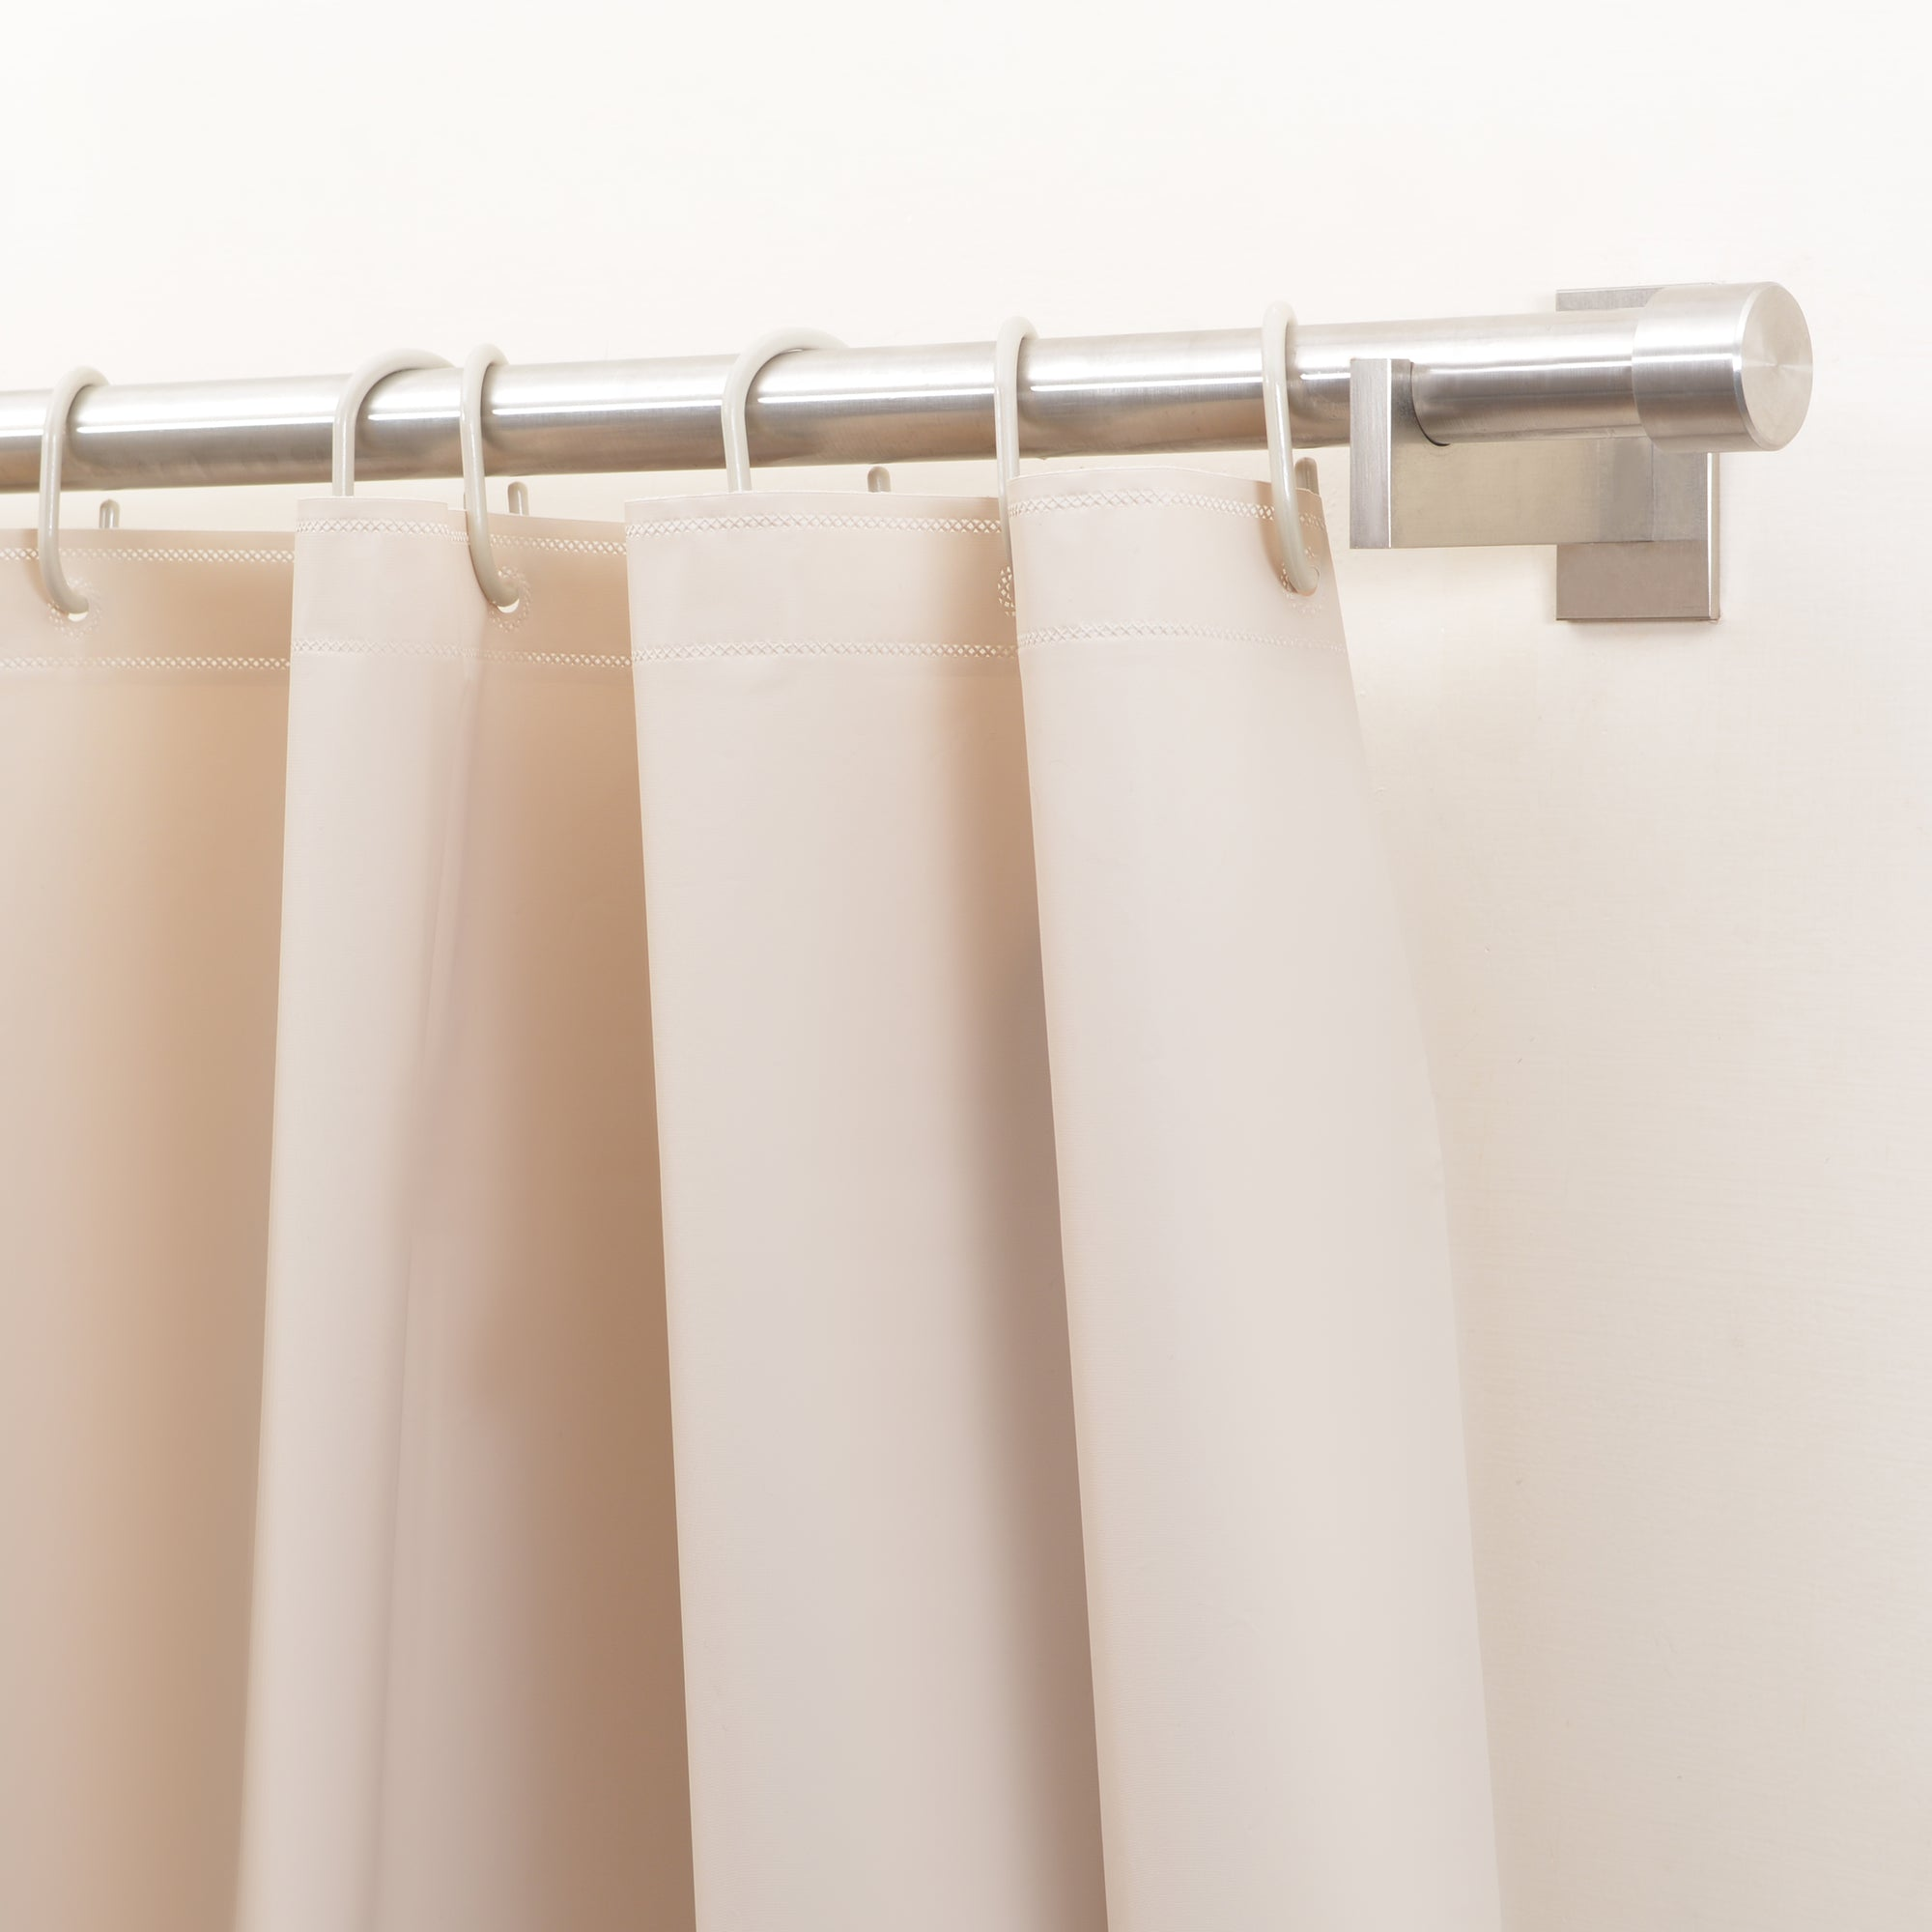 Pebble Matelassé Beige Shower Curtain With Rings